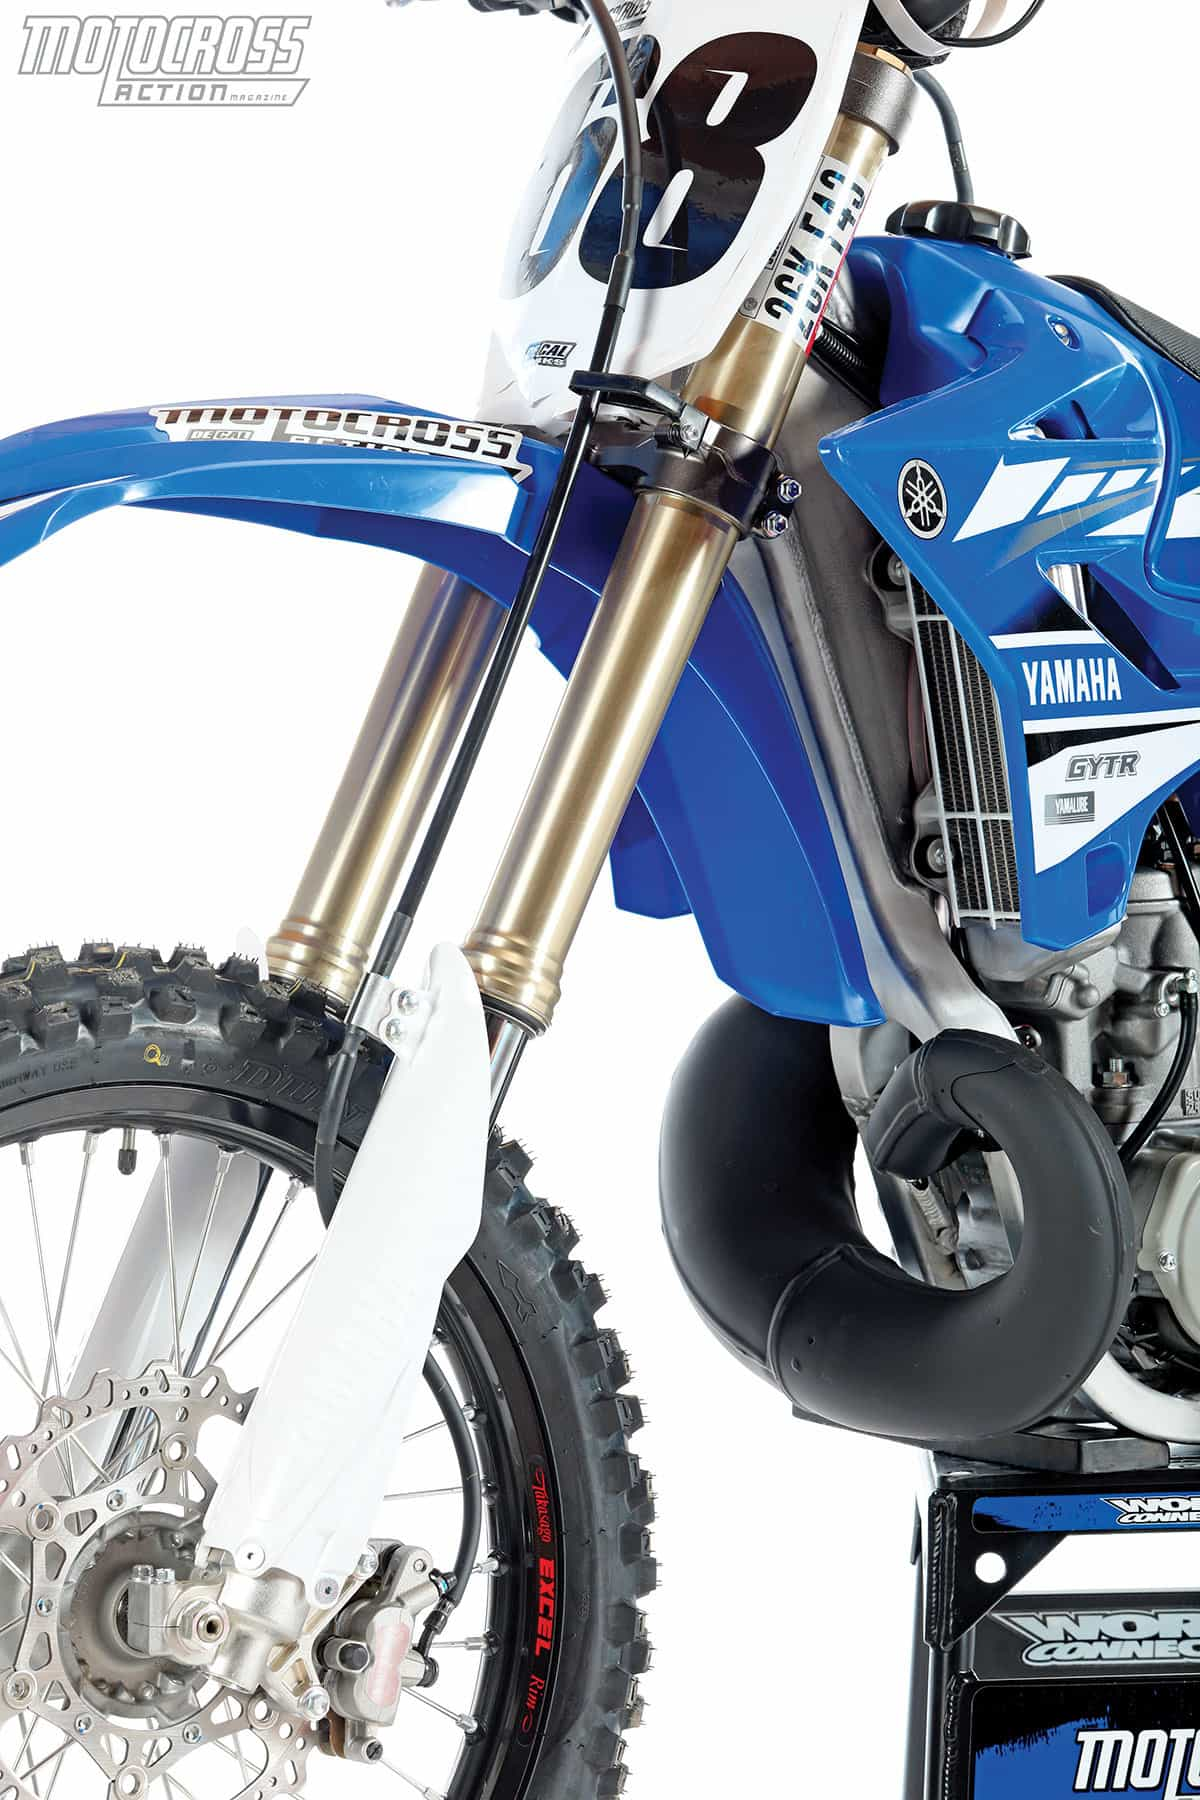 Yamaha needs to update every part on their YZ250, save for the Kayaba SSS spring forks. They still are a step ahead.